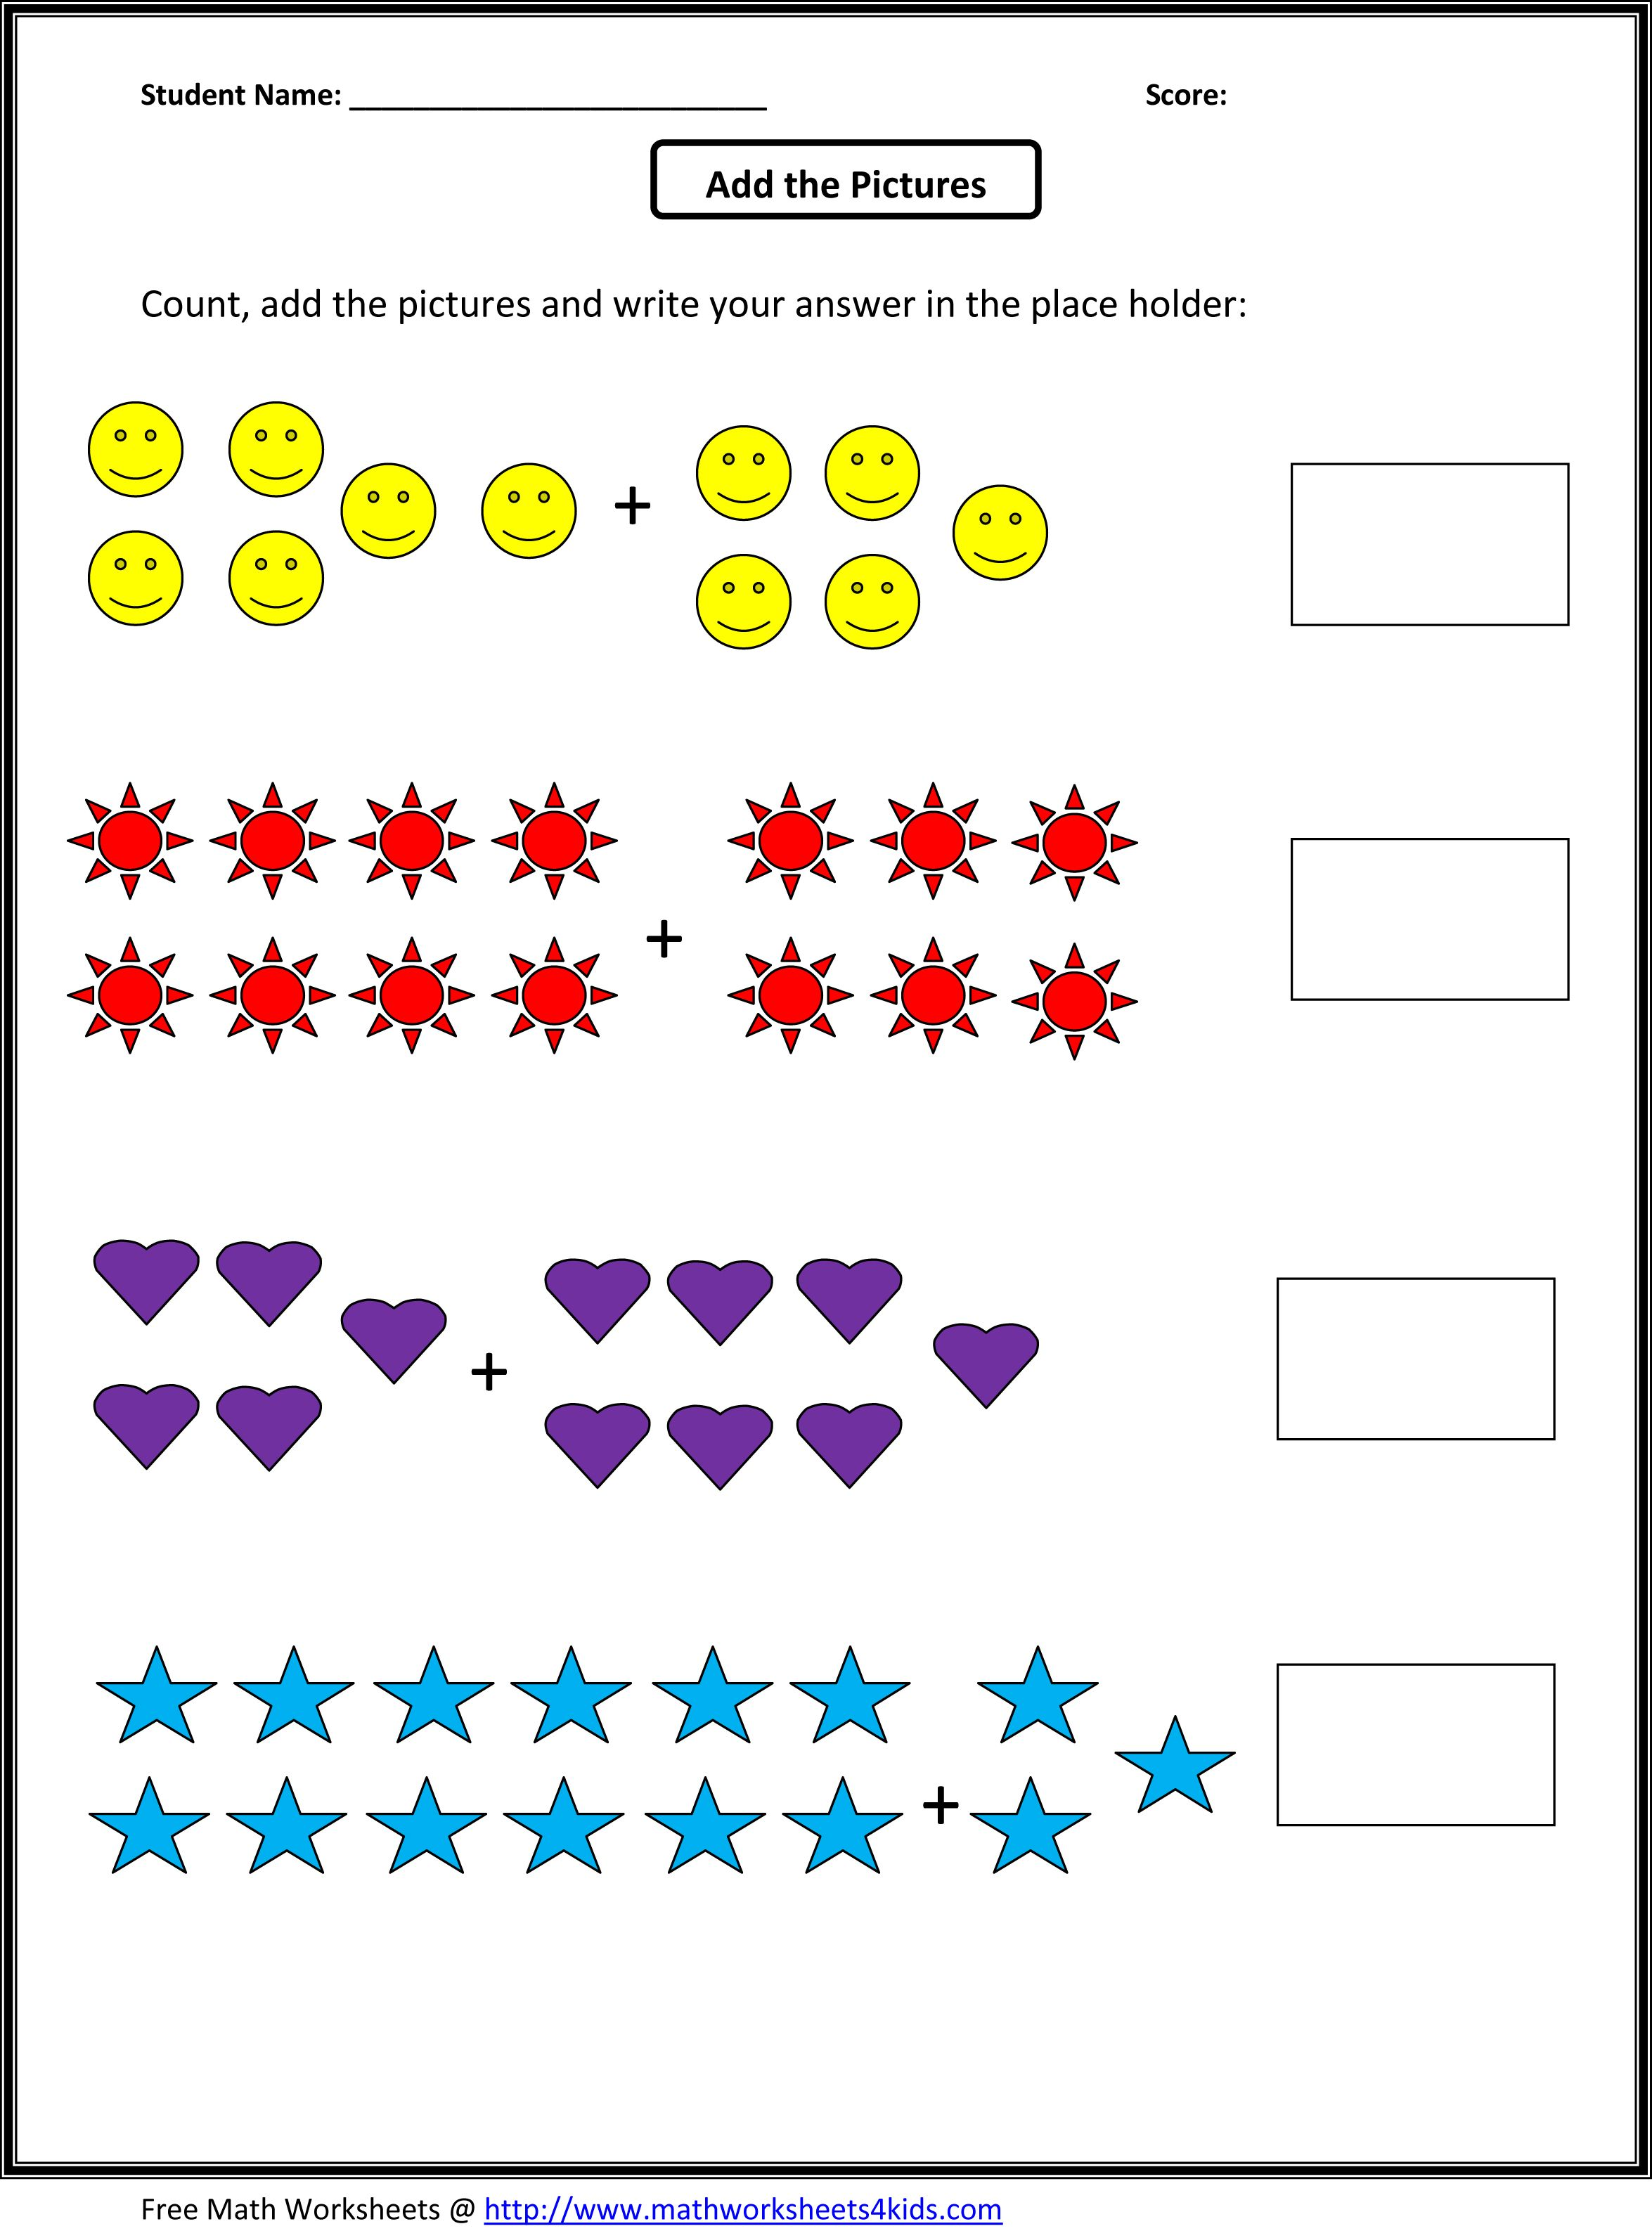 Worksheets Math Worksheets Grade 1 grade 1 addition math worksheets first worksheets